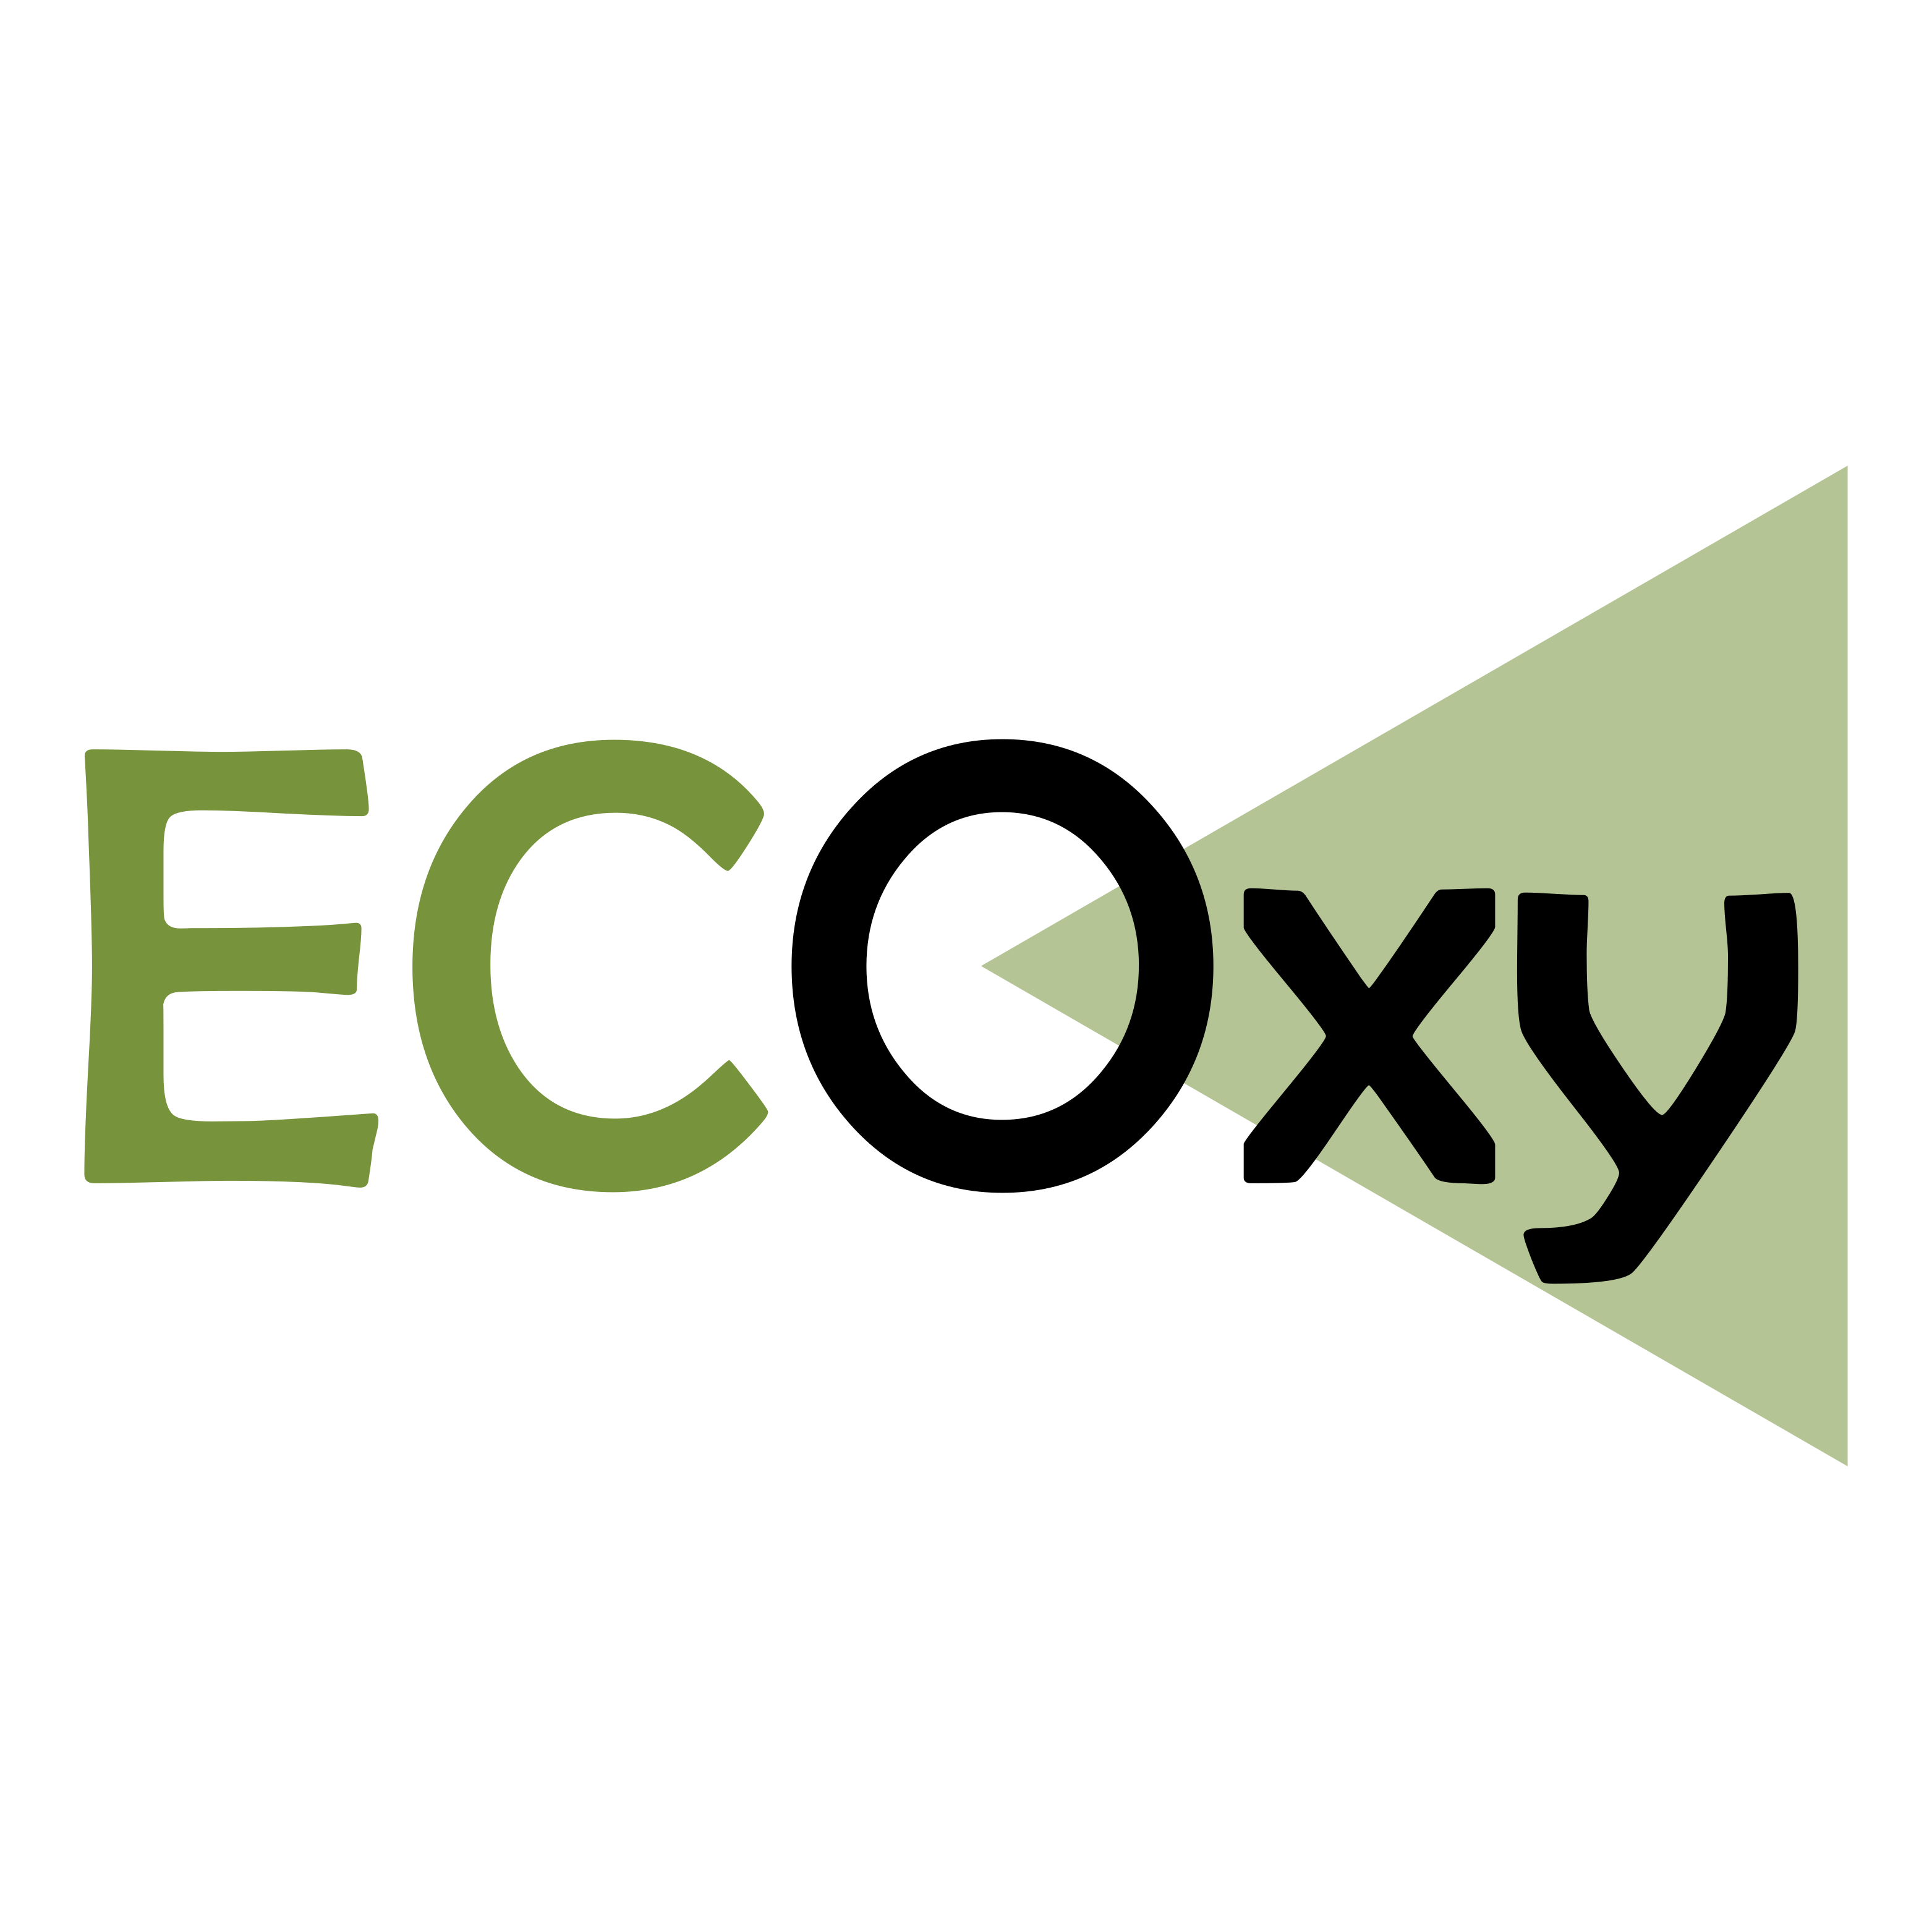 ECOXY -BBio-based recyclable, reshapable and repairable (3R) fibre-reinforced EpOXY composites for